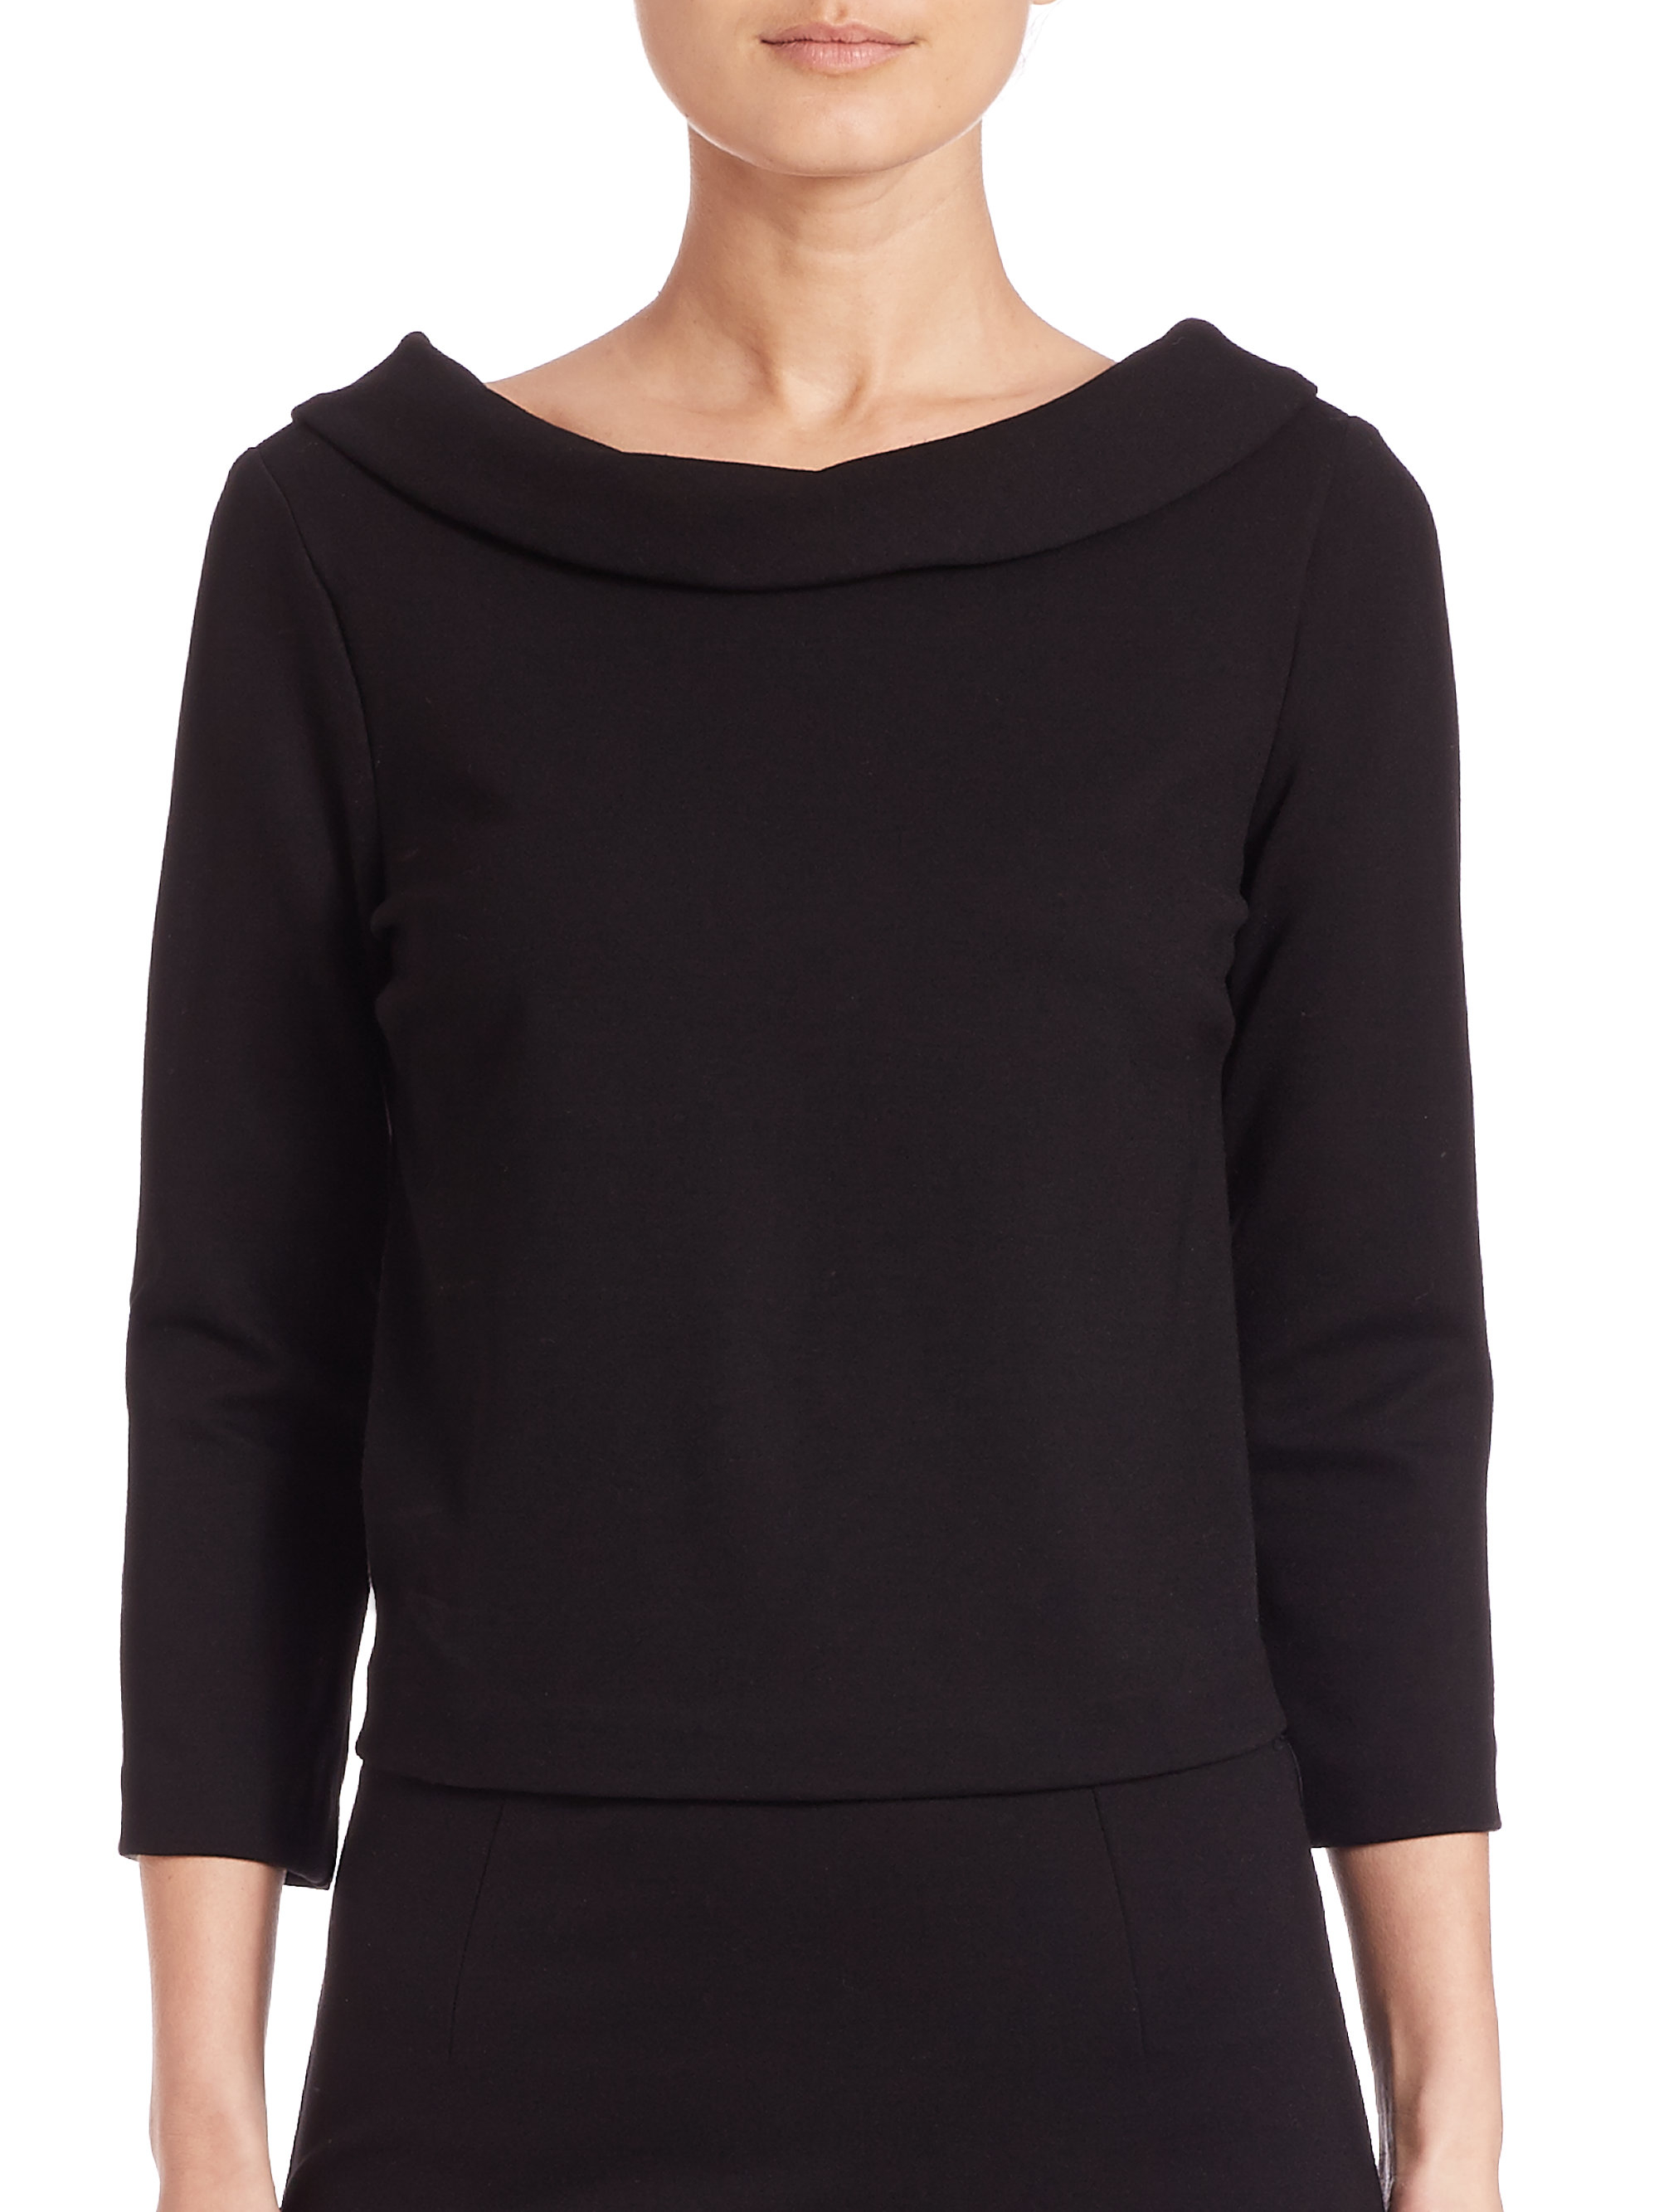 A feminine touch goes a long way in projecting your unique appeal, as evidenced by the white lace collar of this black top! This knit number from our ModCloth namesake label goes beyond aesthetic expectations with the addition of a keyhole opposite its neckline and fluttery short sleeves.